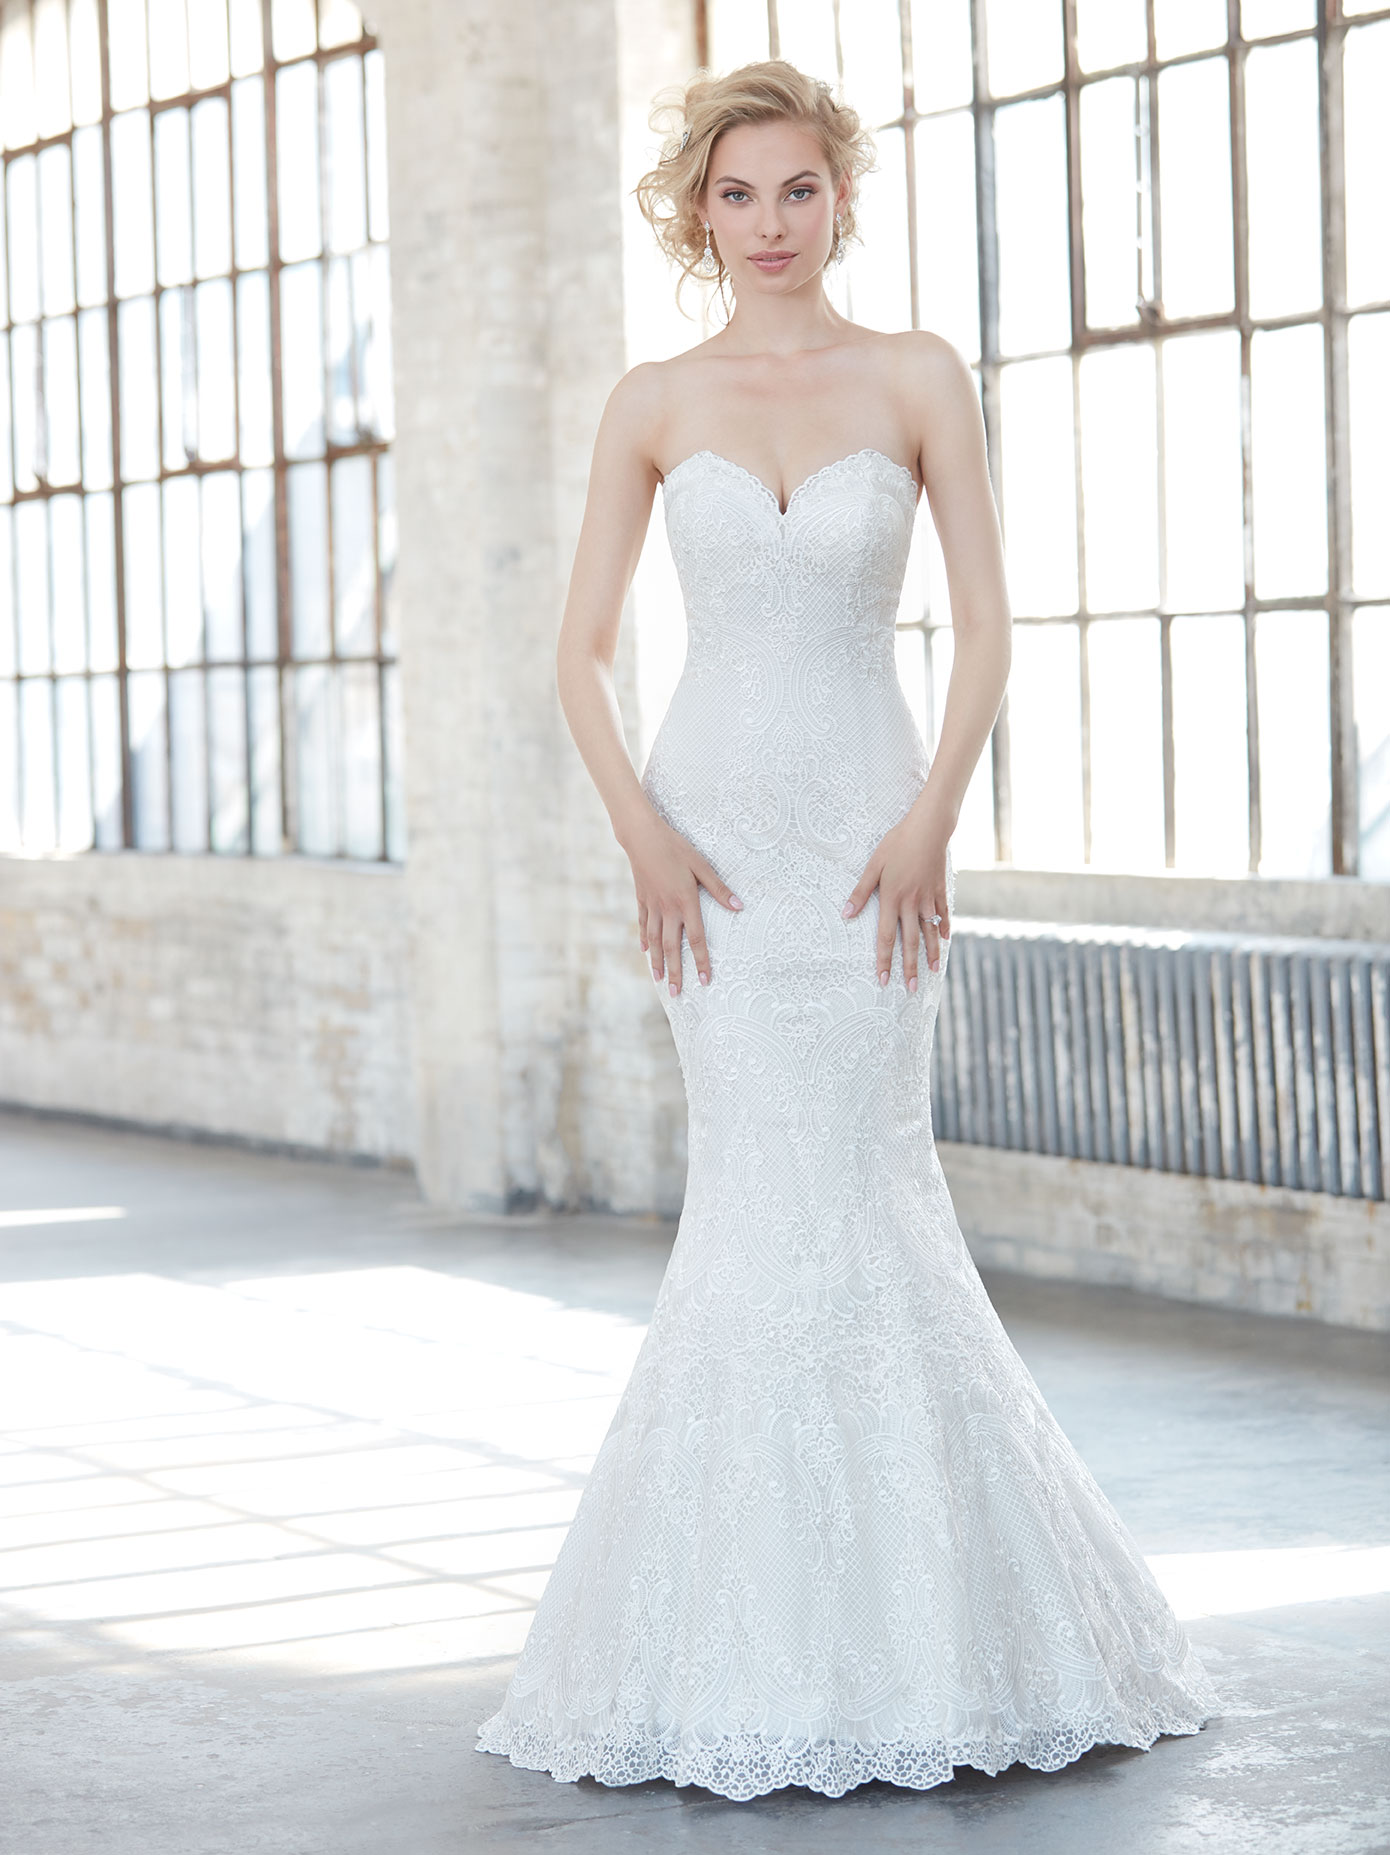 Allure Bridal Gowns Melbourne : Strapless lace wedding dress featuring a sweetheart neckline madison